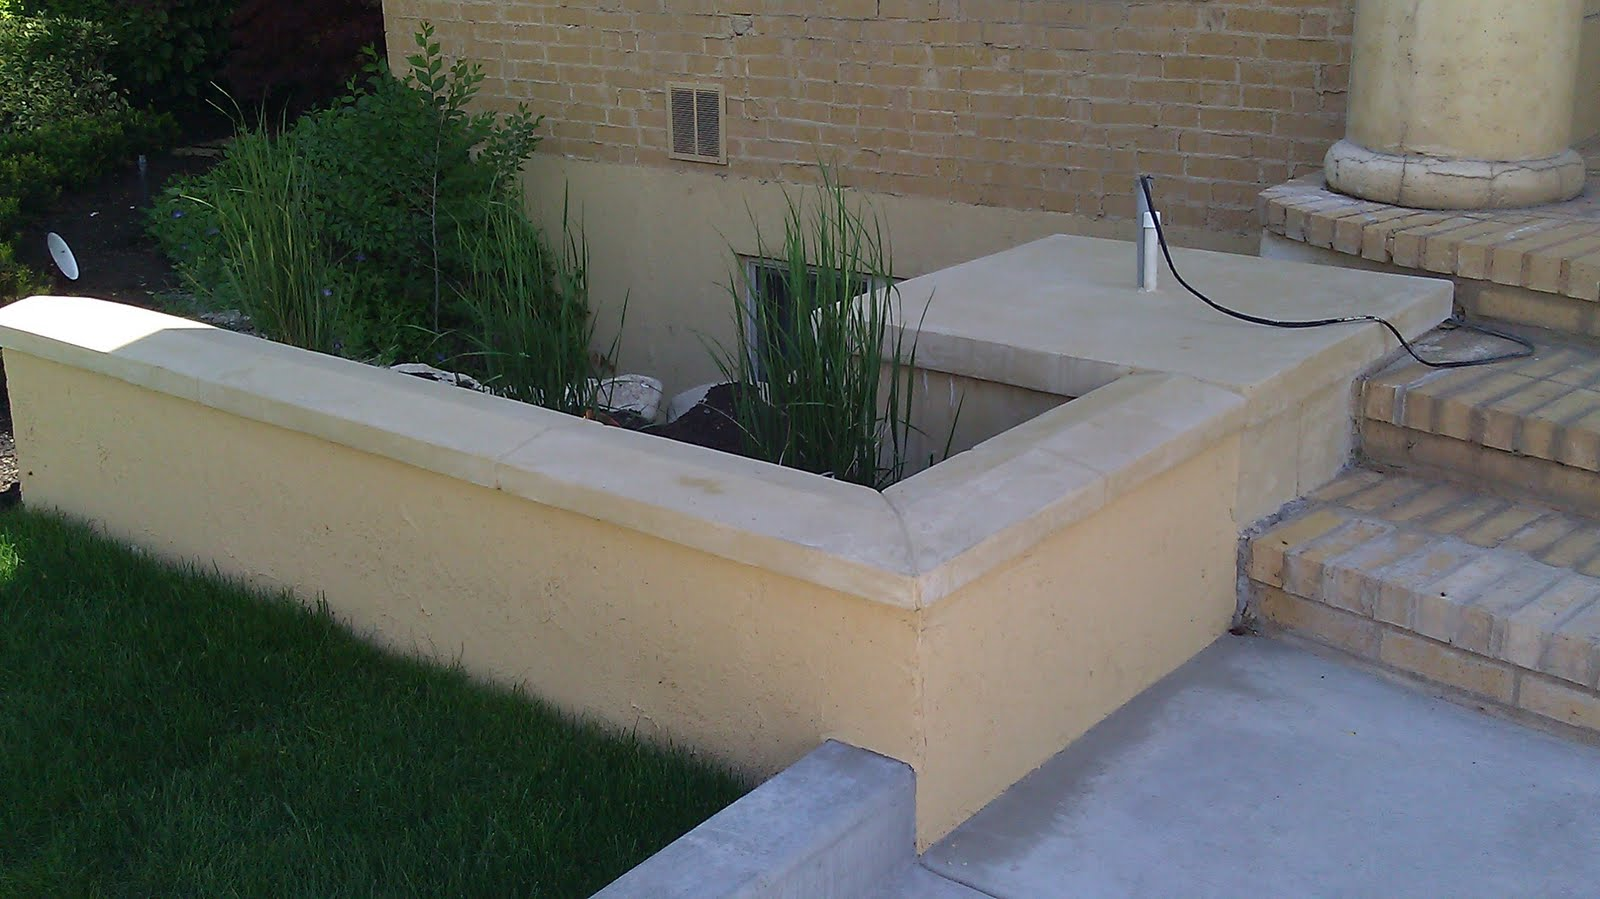 Stucco tech platinum landscape retaining wall for Stucco garden wall designs